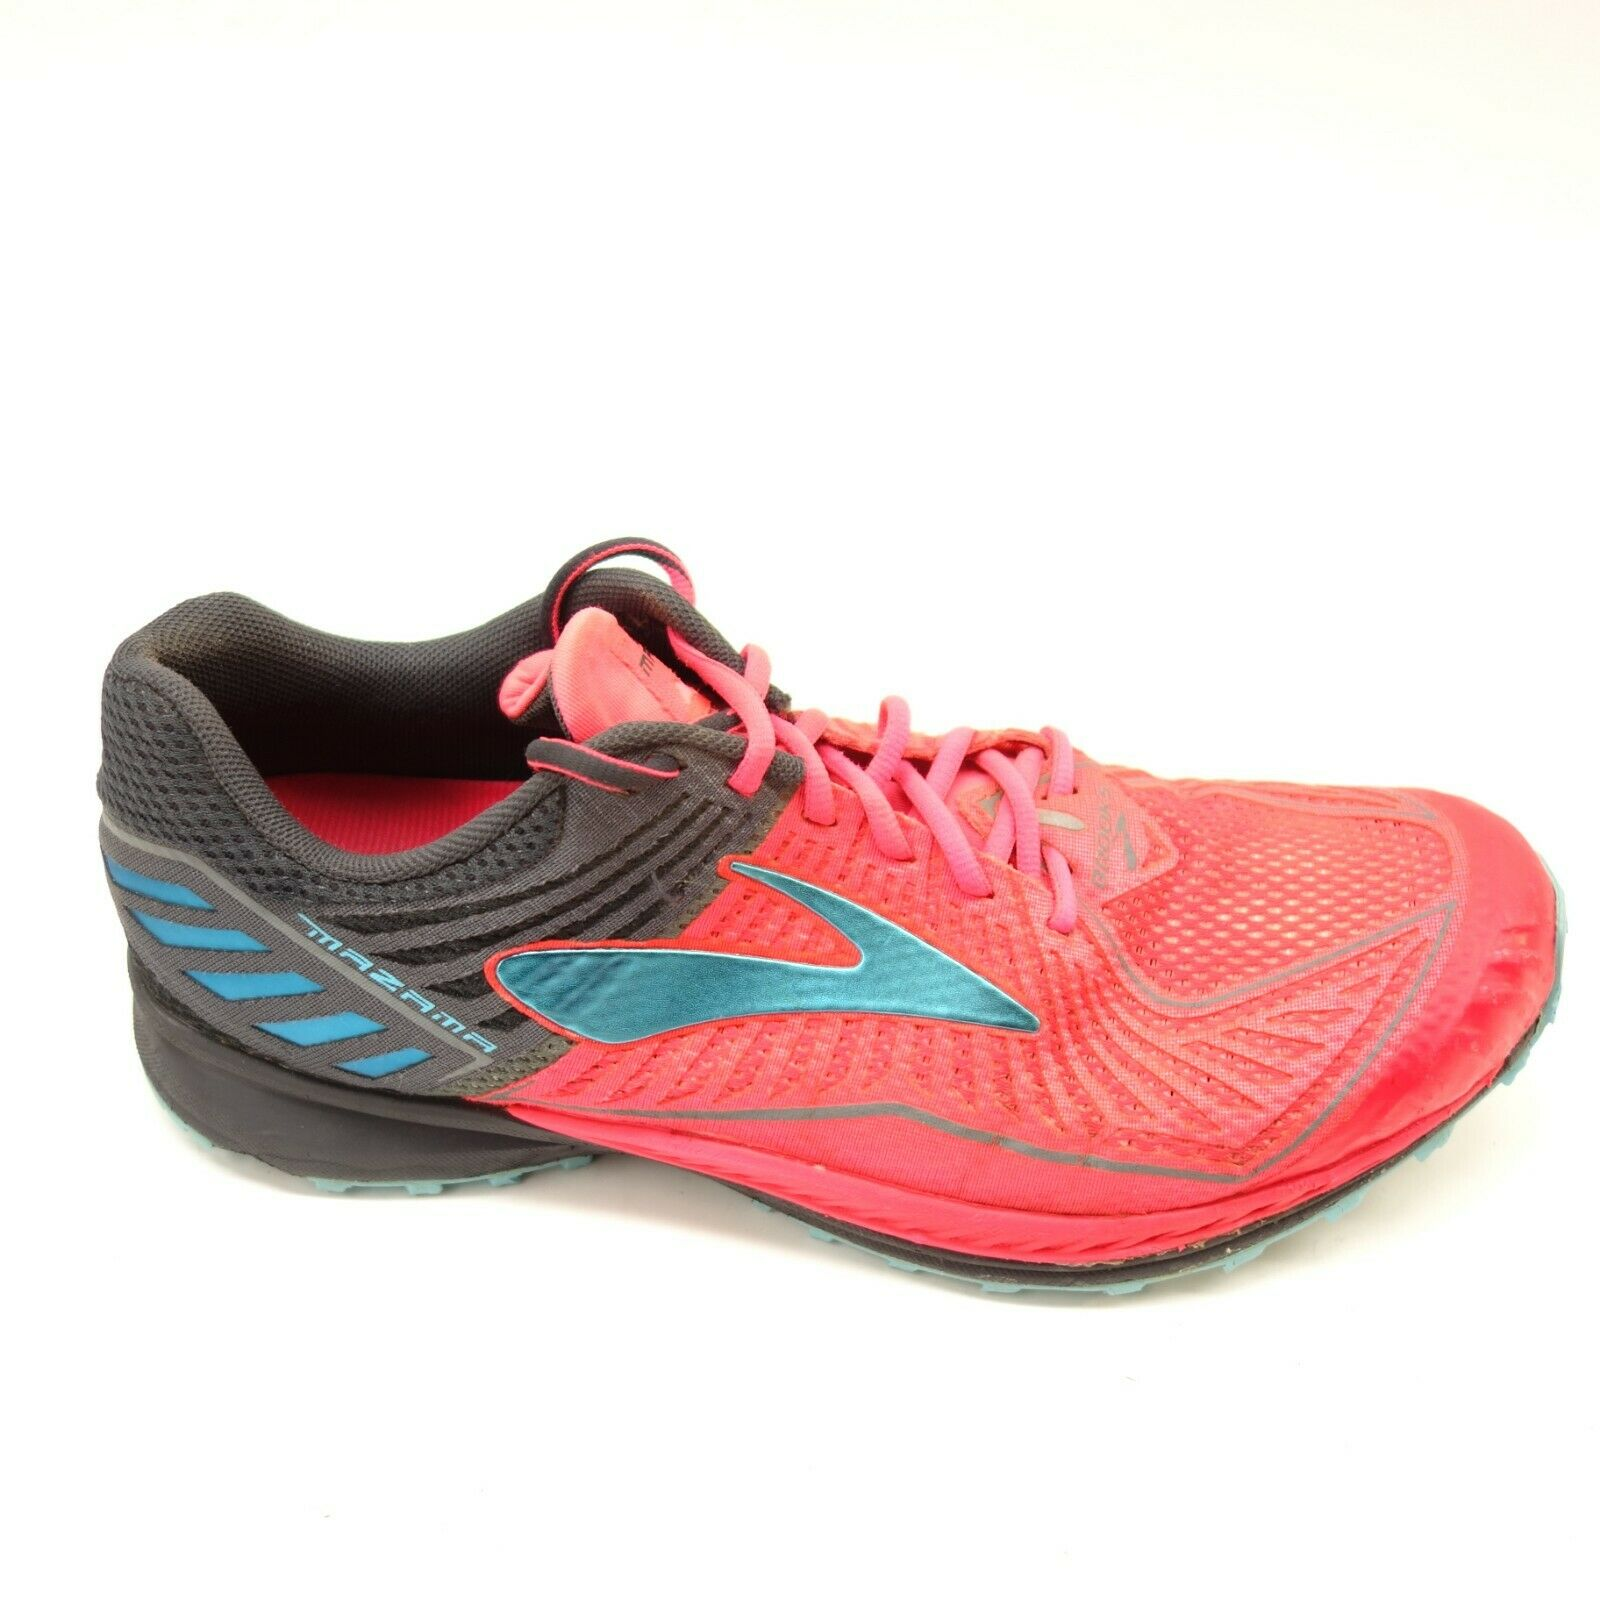 Brooks Brooks Brooks Womens Size 7 Mazama Athletic Support Mesh Cross-Training Running shoes 14710e